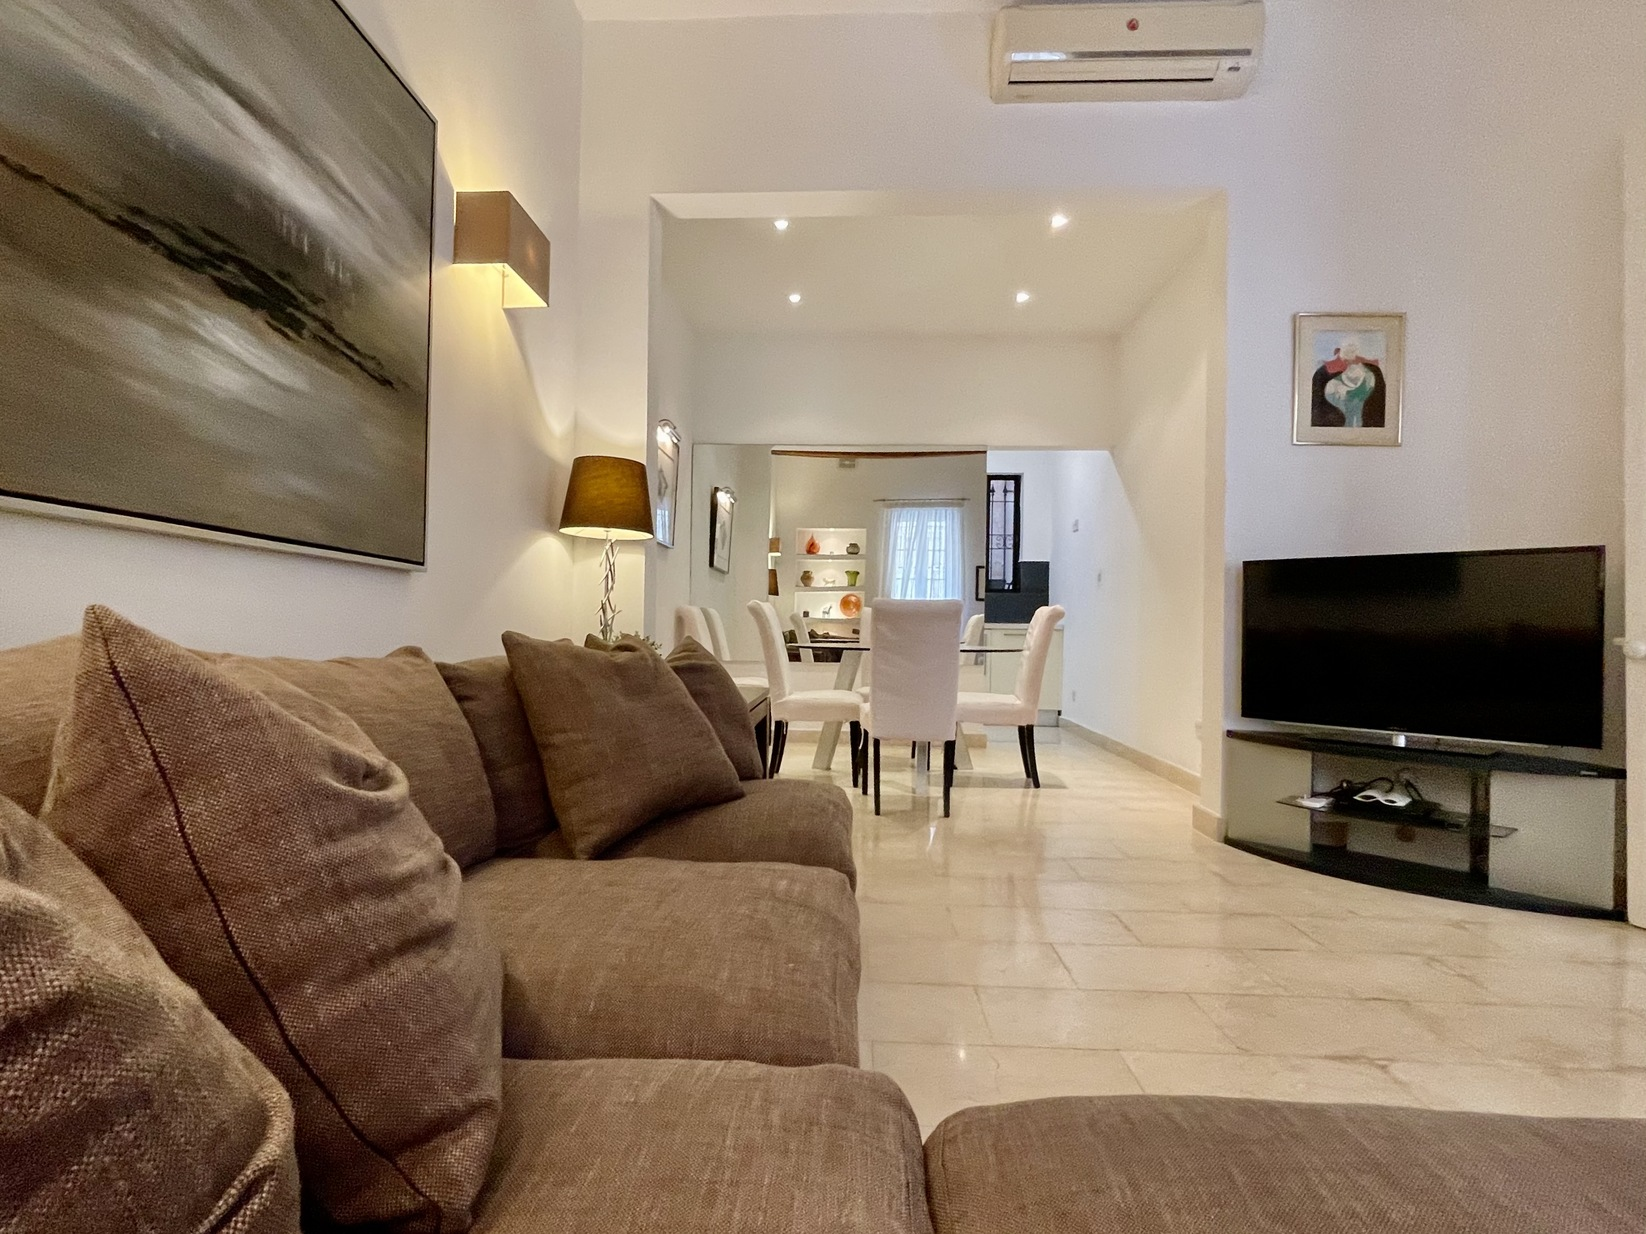 2 bed Town House For Rent in Sliema, Sliema - thumb 3